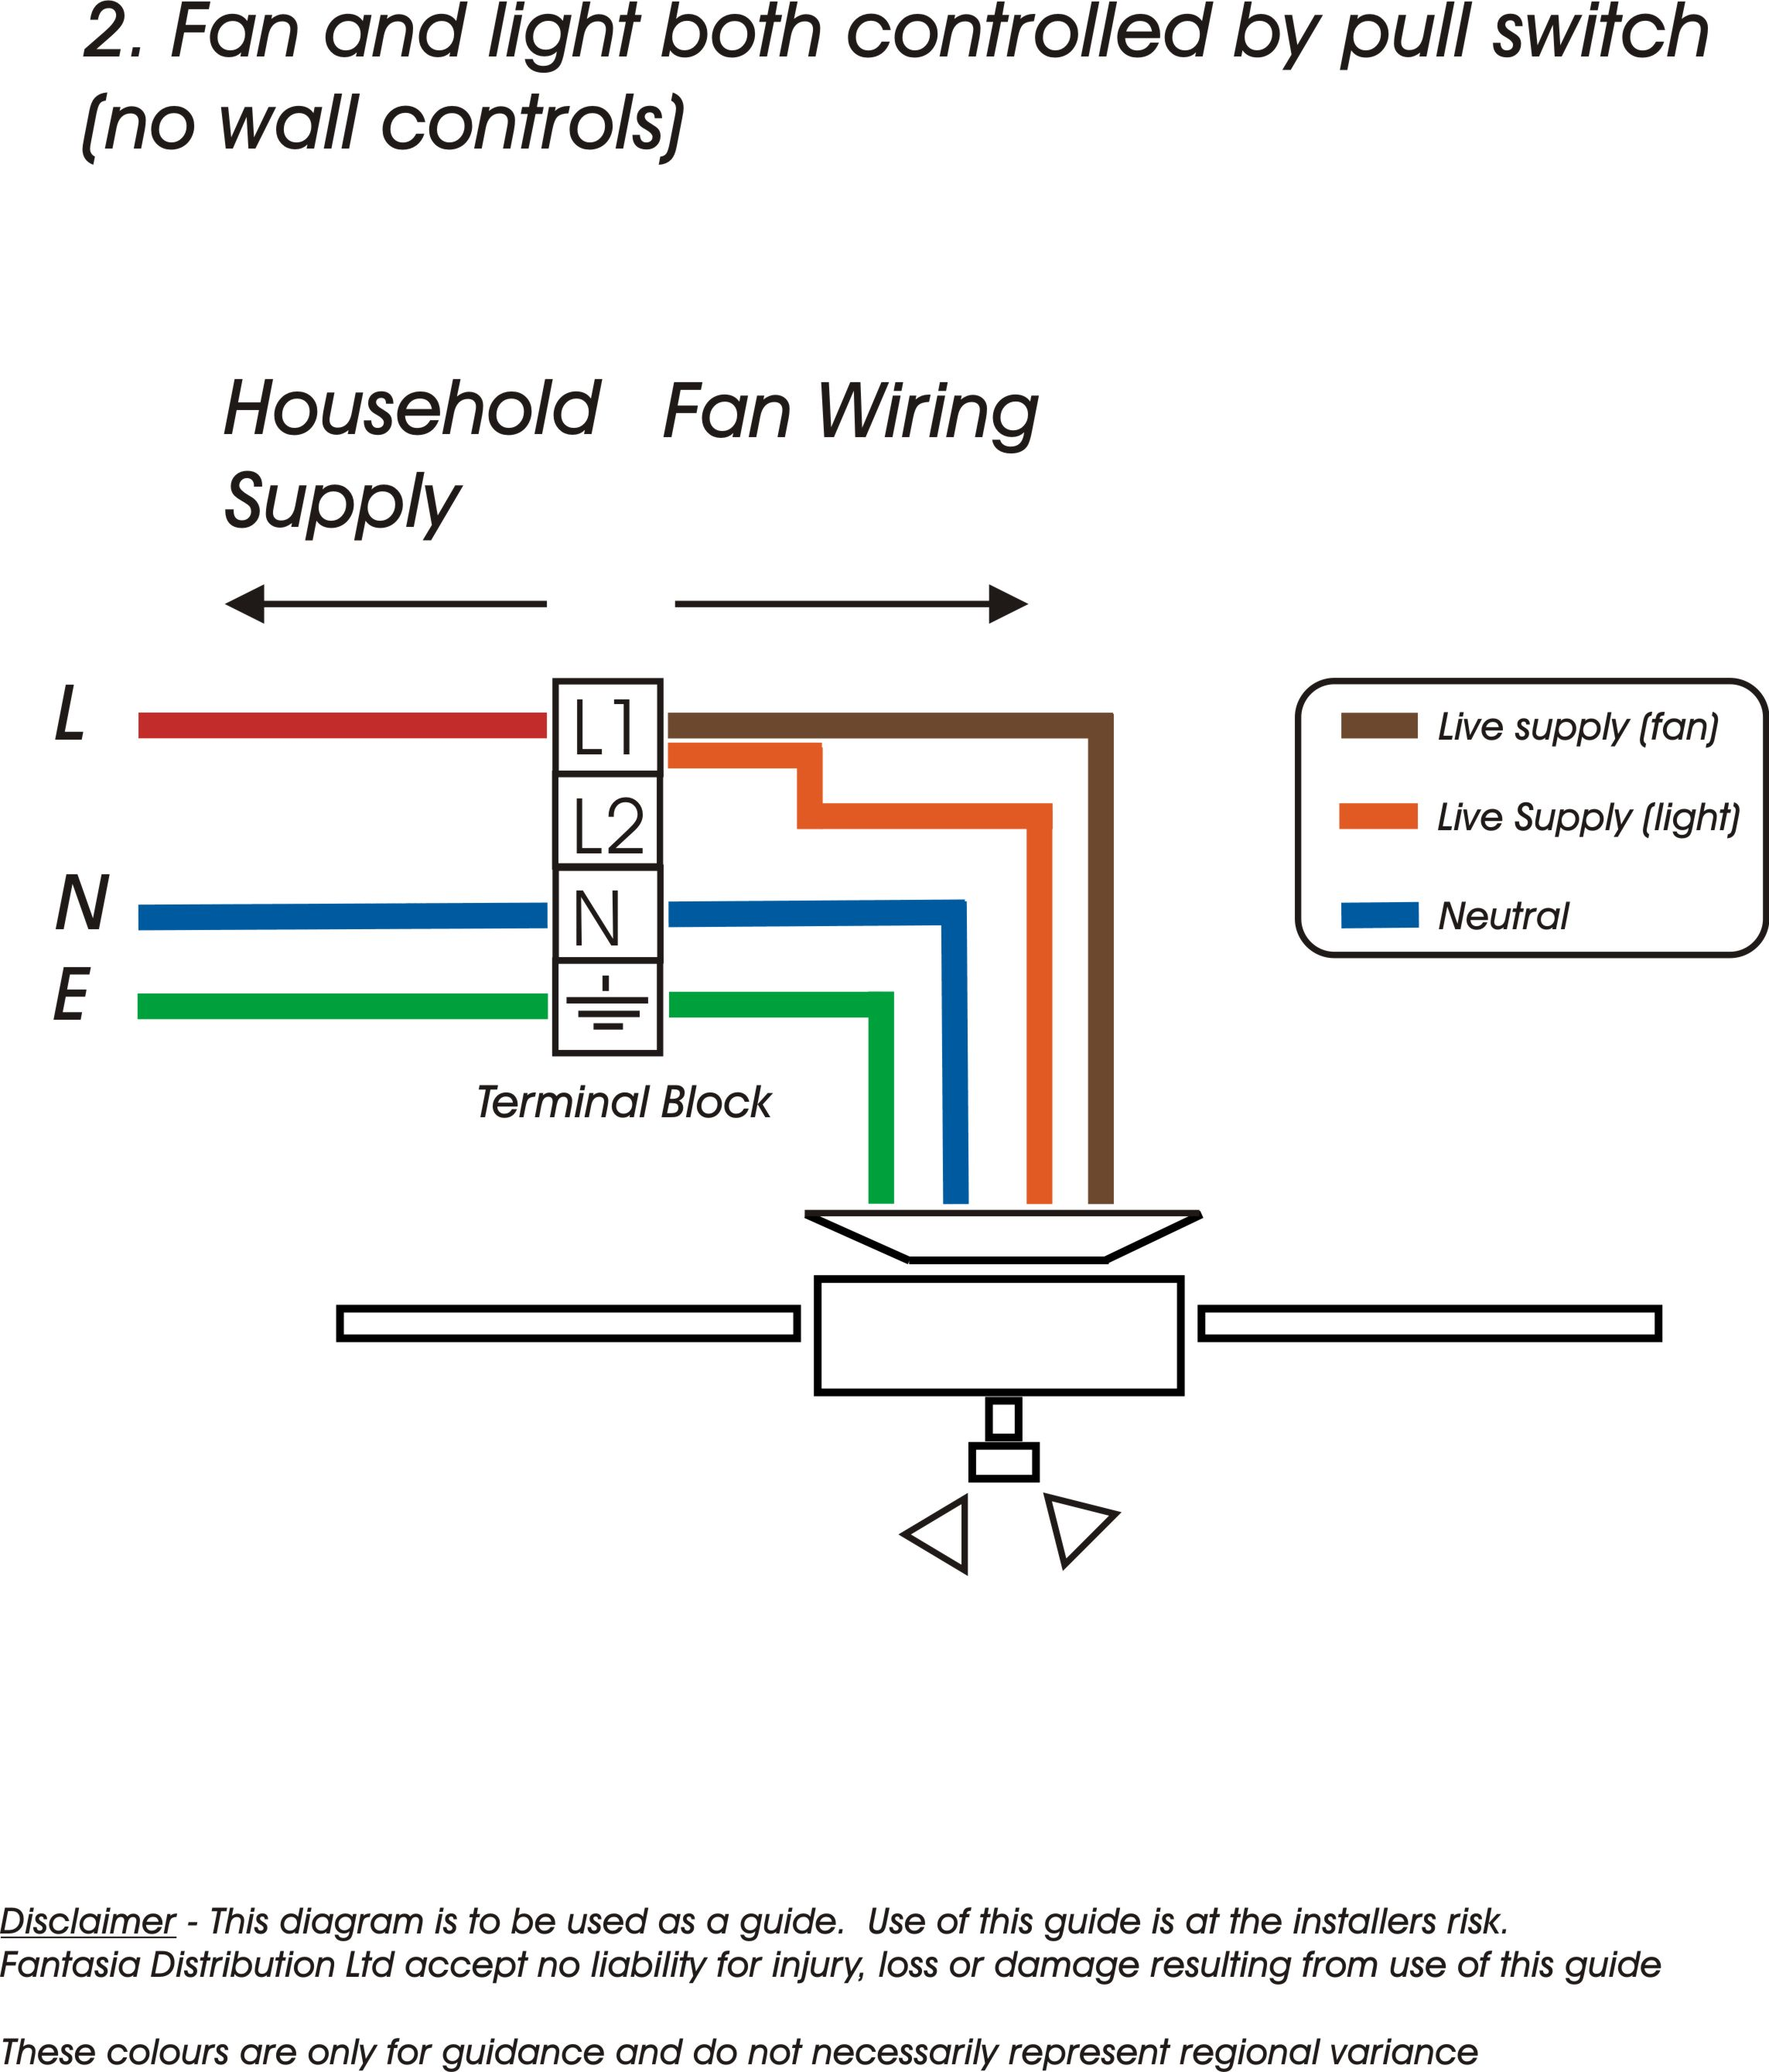 wiring ceiling fans 2 hampton bay ceiling fan motor wiring diagram integralbook com hampton bay fan wiring diagram at readyjetset.co